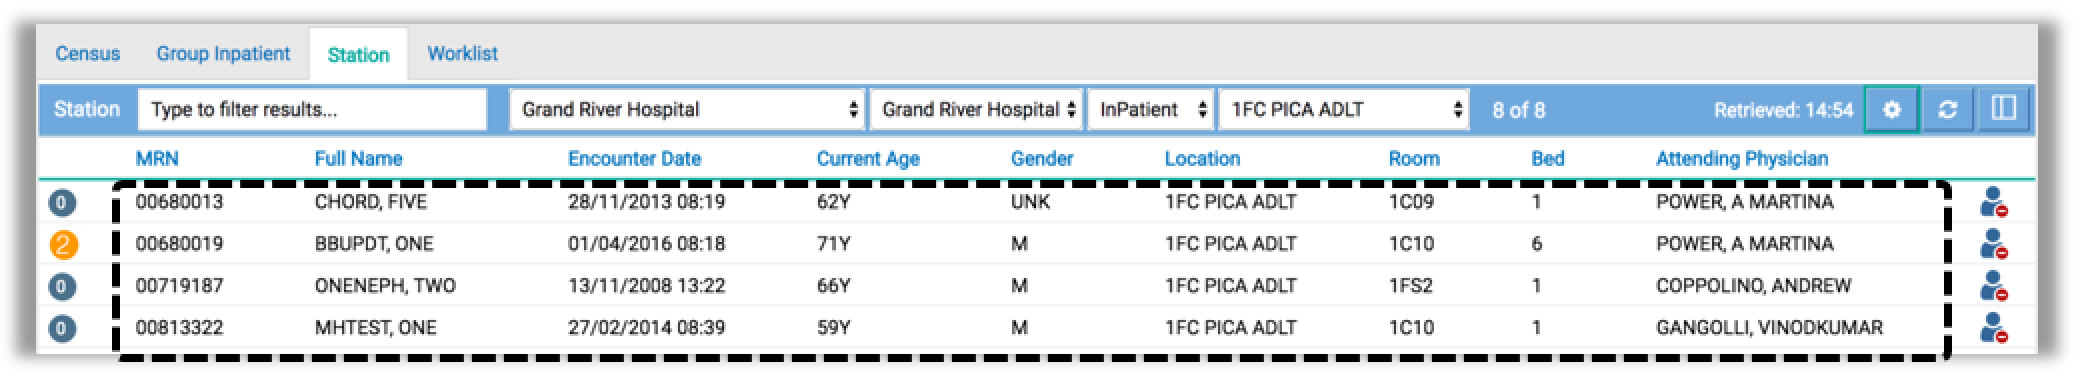 Image showing how to access the patient records from station tab